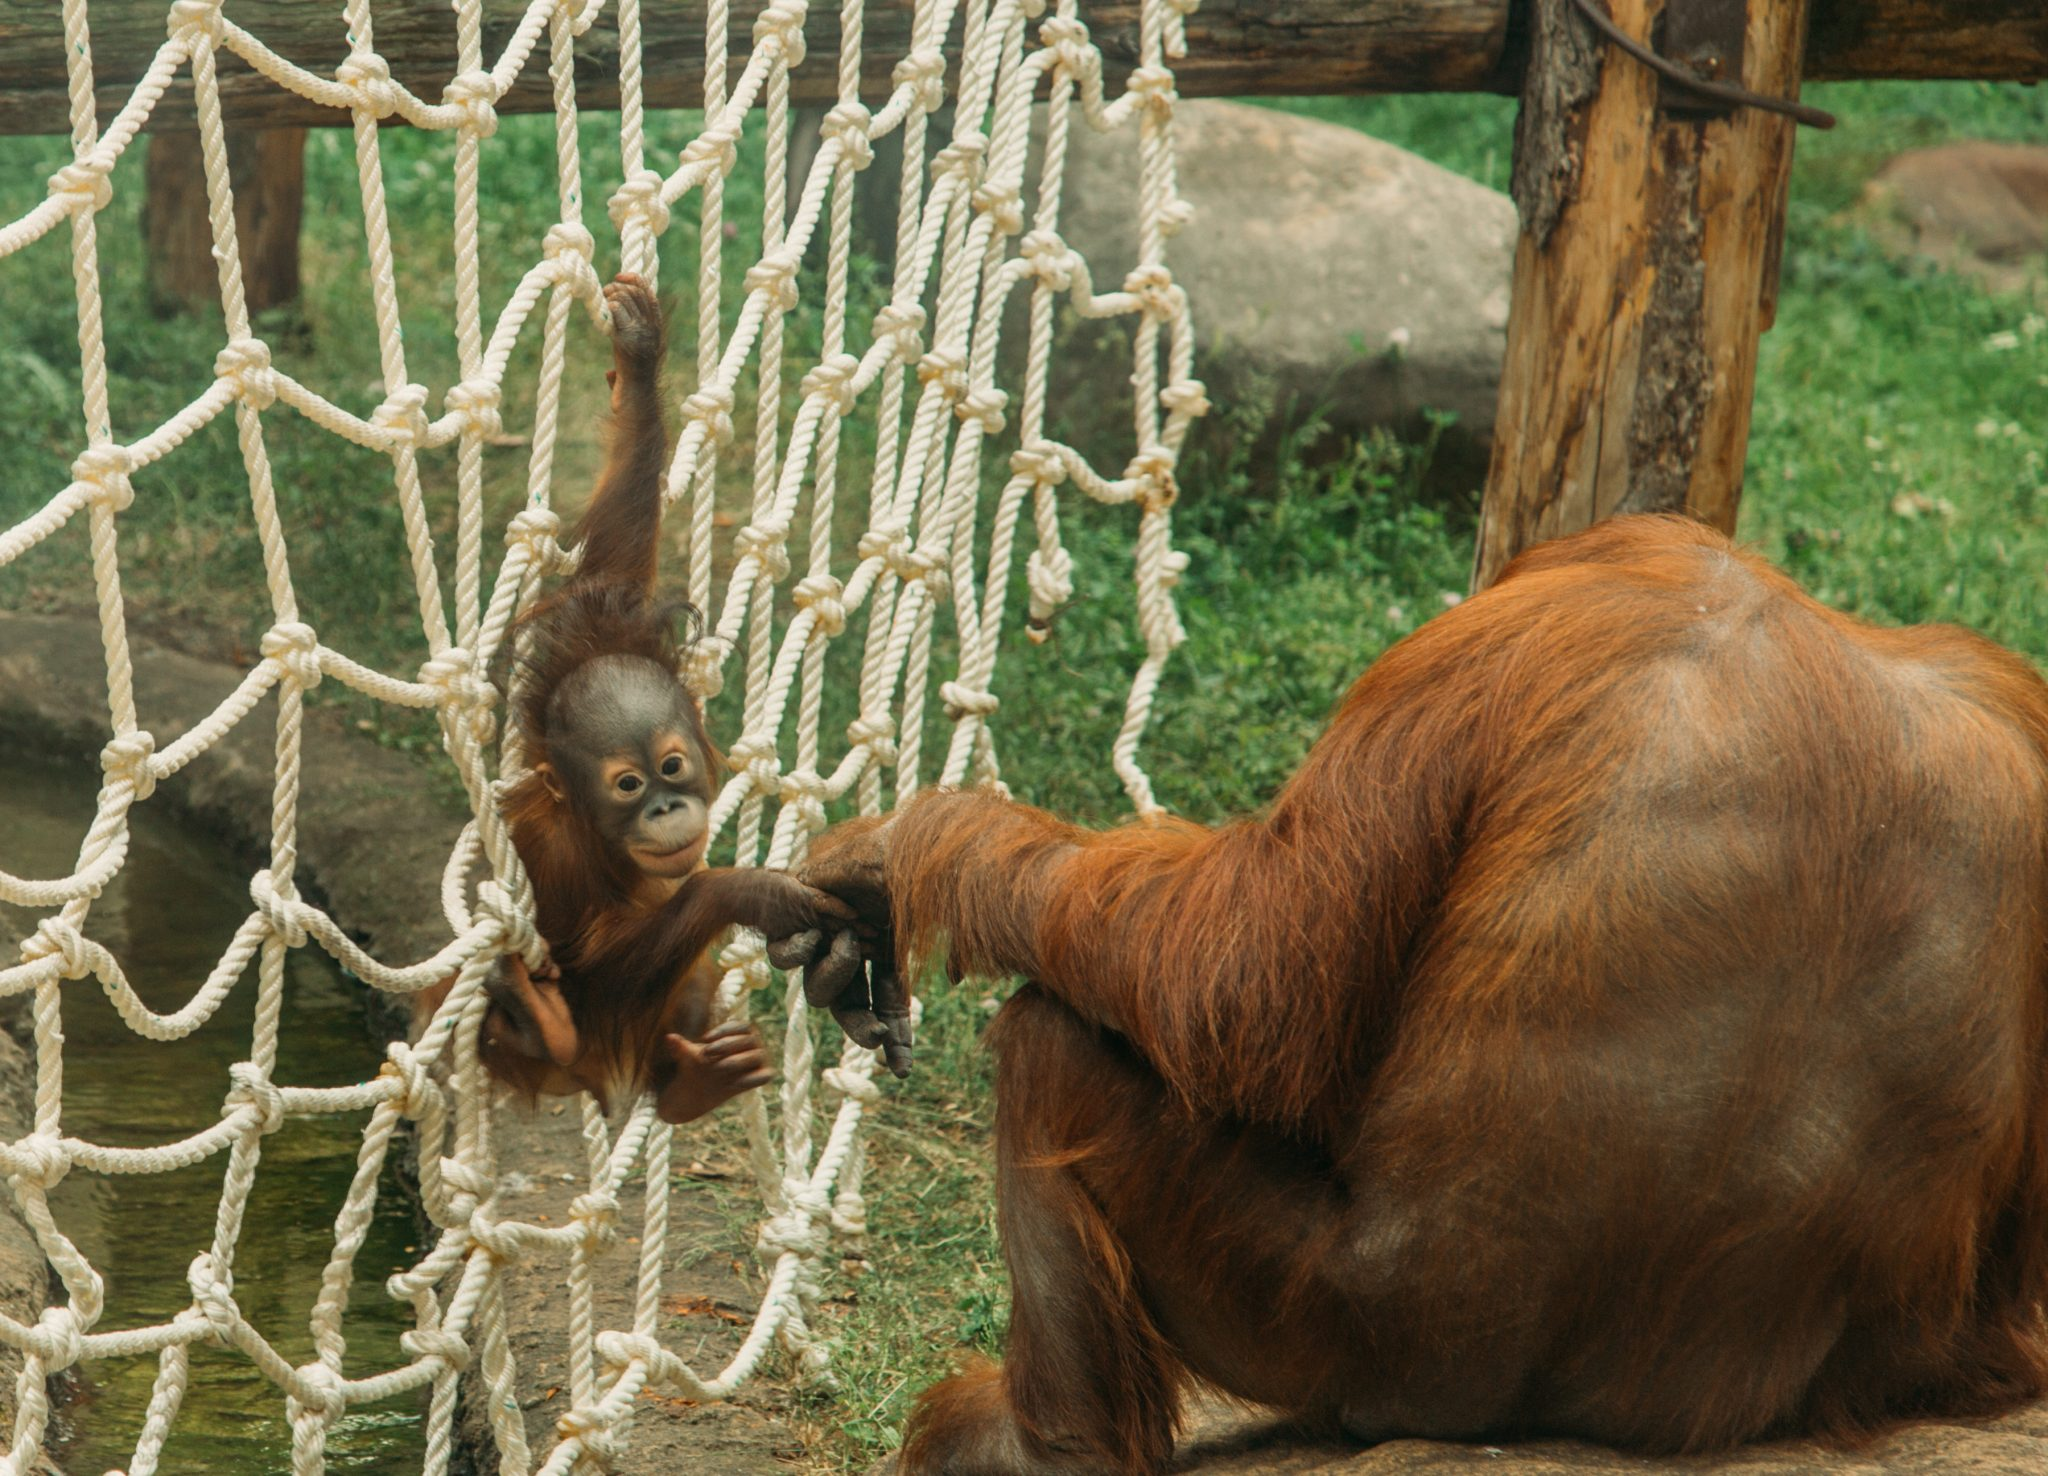 An adorable baby orangutan plays while holding its mother's hand - Moscow zoo in Russia